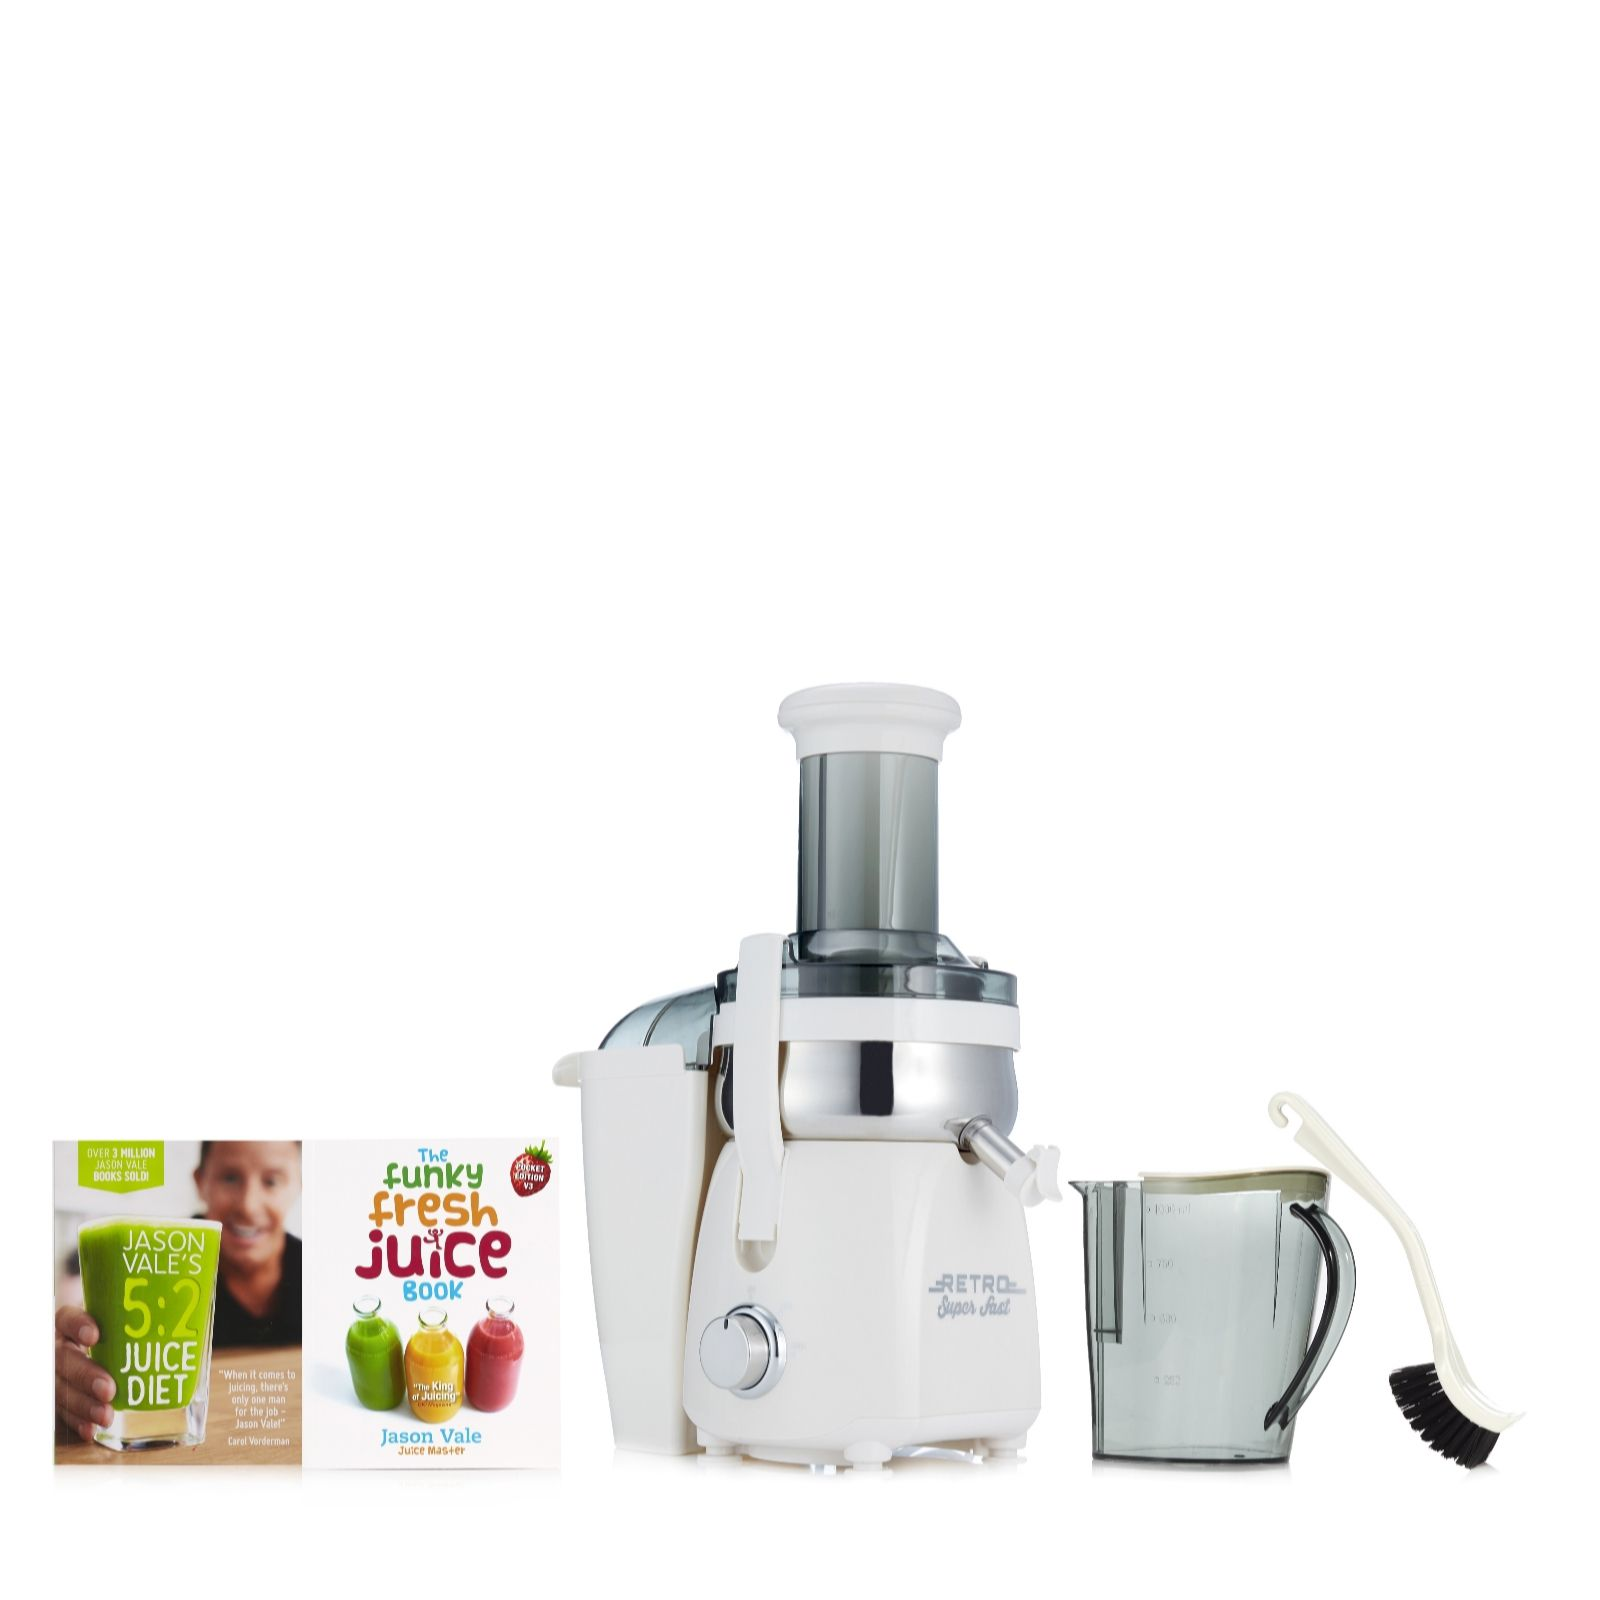 Kitchen small appliances uk - Jason Vale Retro Fast Juicer With 5 2 Juice Diet The Funky Fresh Juice